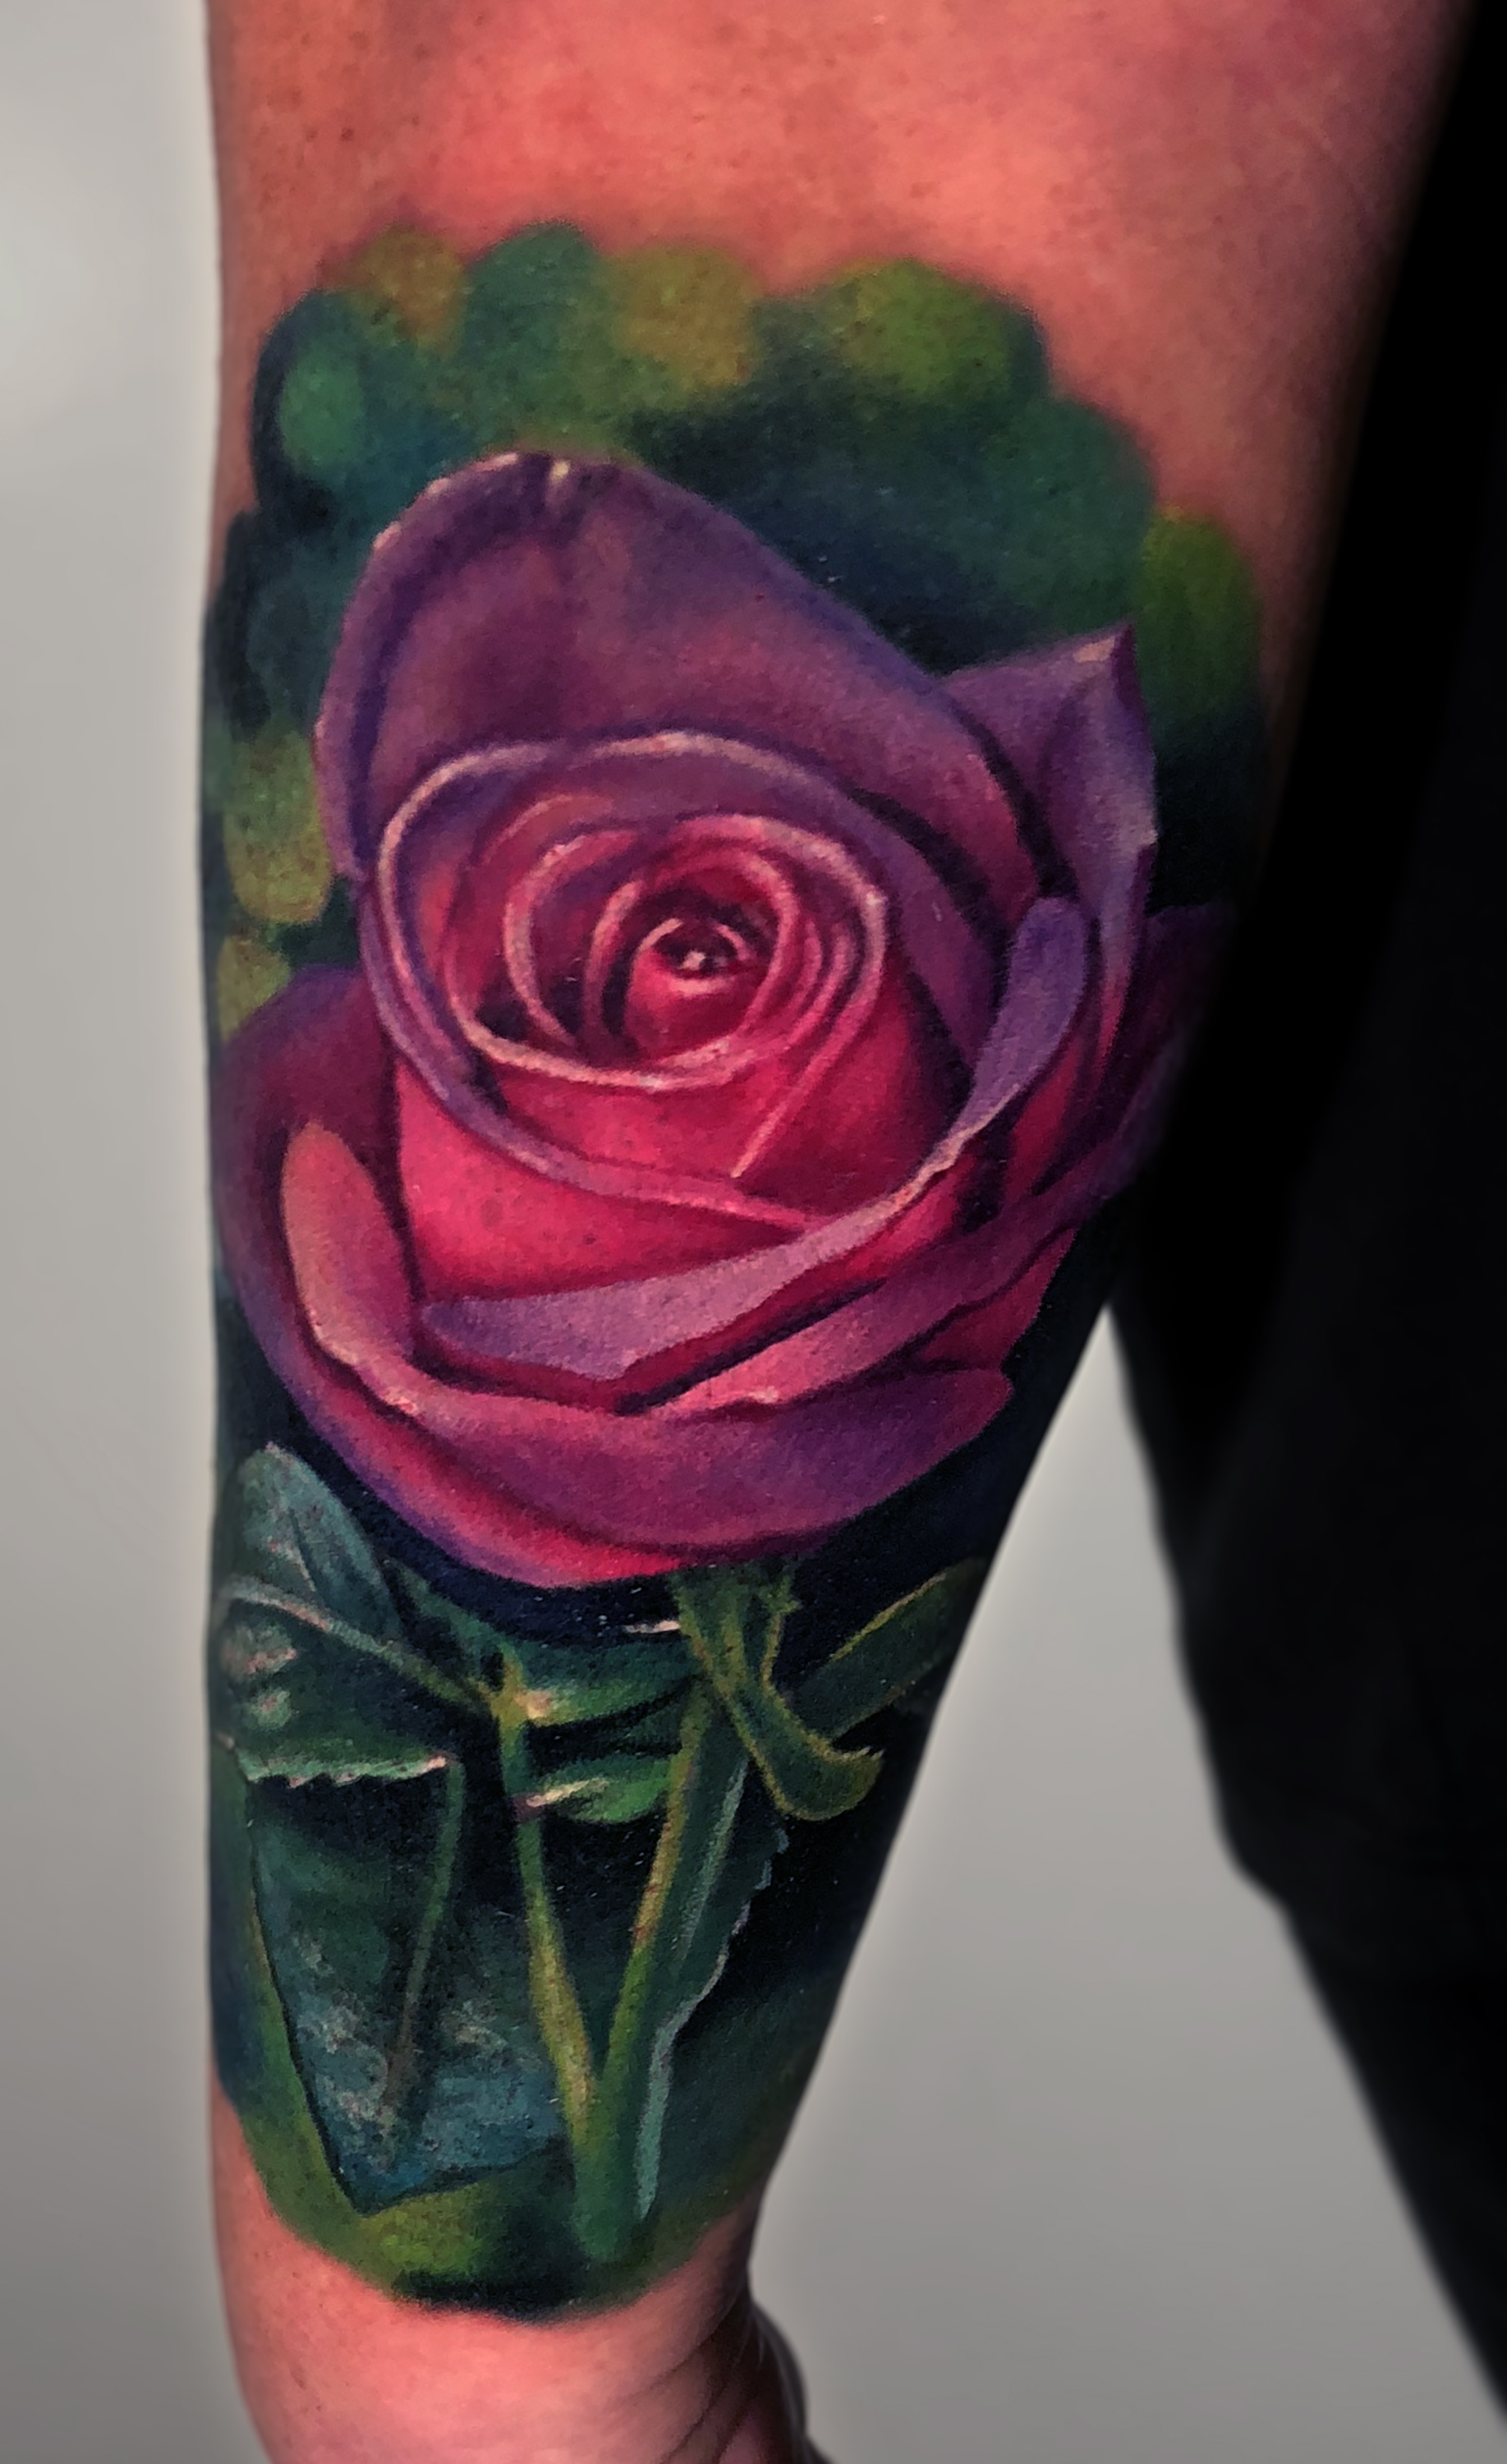 Liz Cook Tattoo Purple Pink Rose Green Stem Background Color Realism.jpg